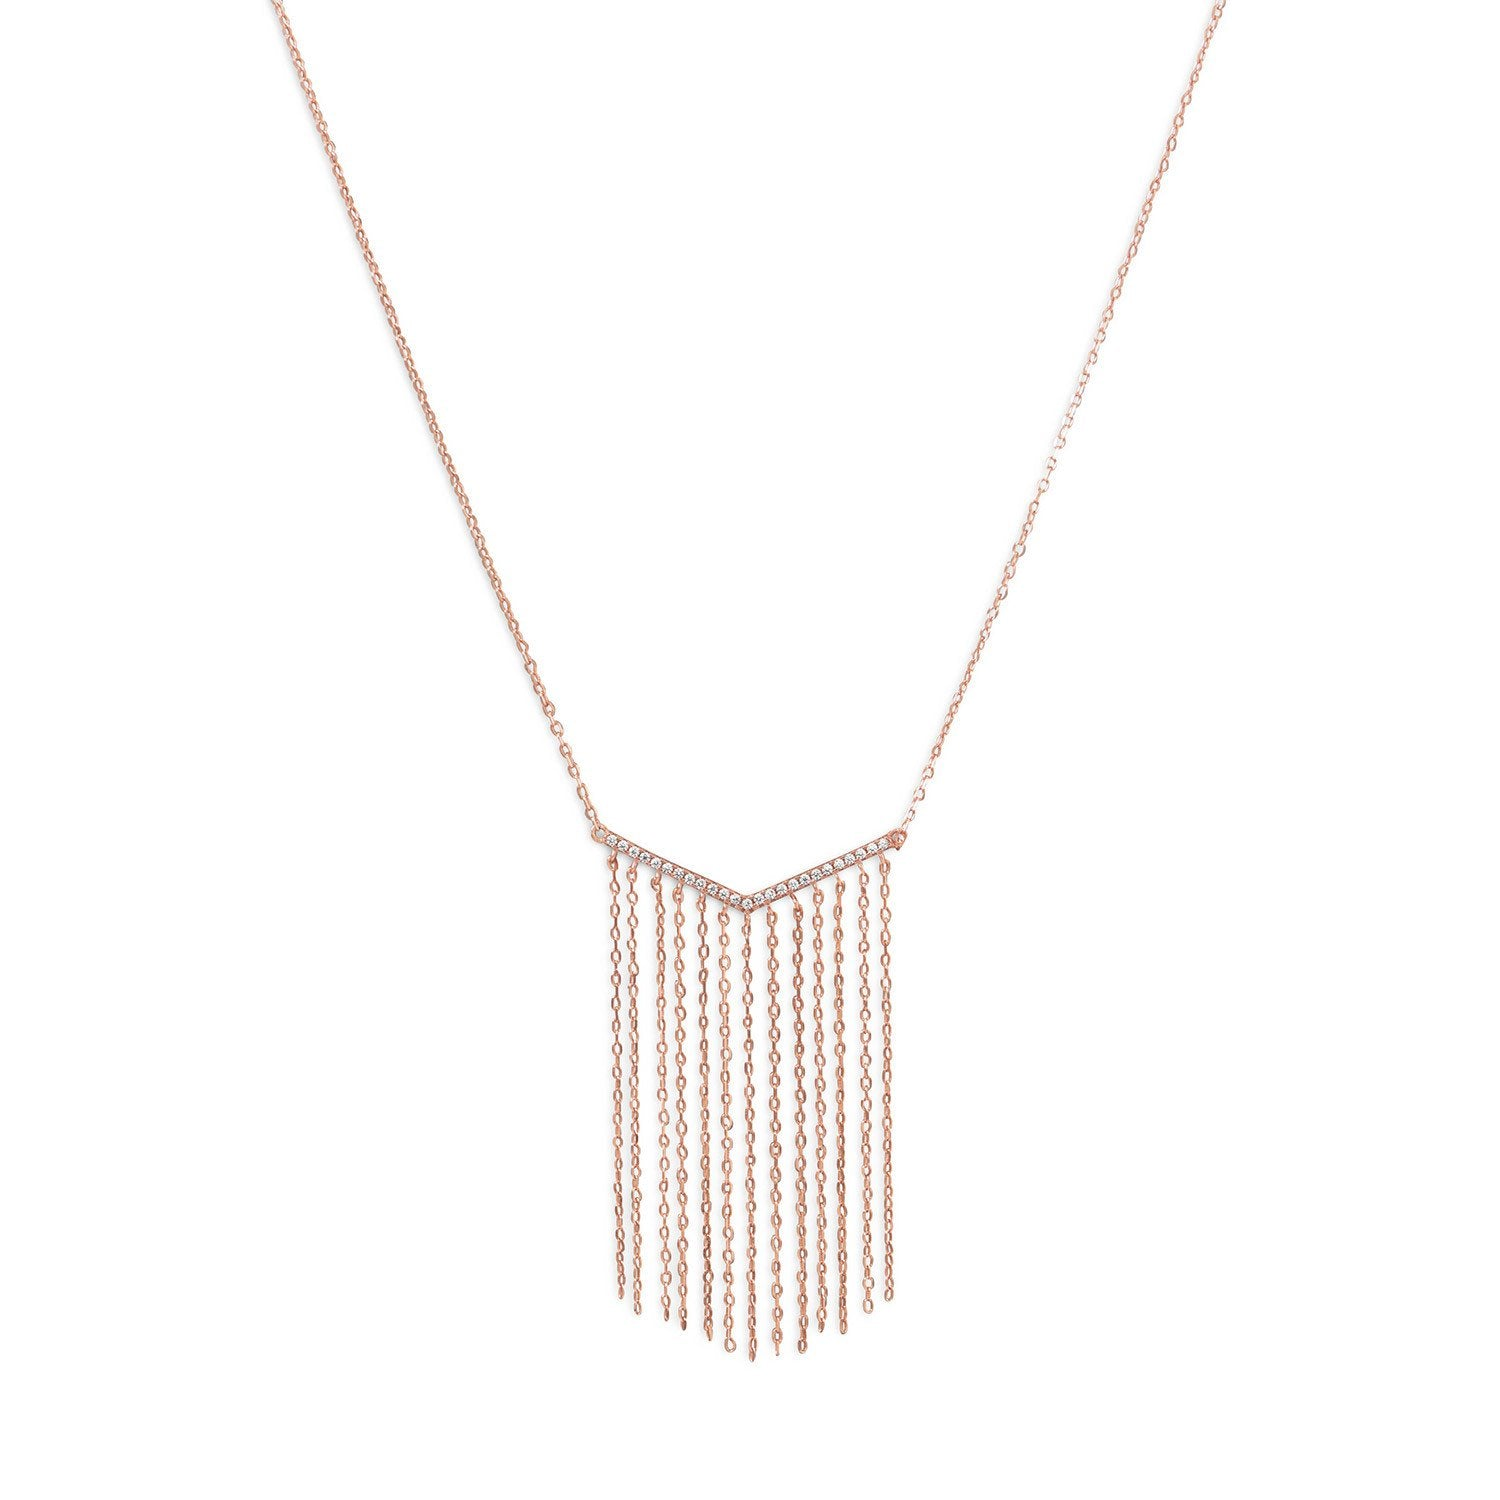 V-Tassel Drop Necklace, Necklaces, [GLITIC], [Personalized_Jewelry], [Vegan_Bags]